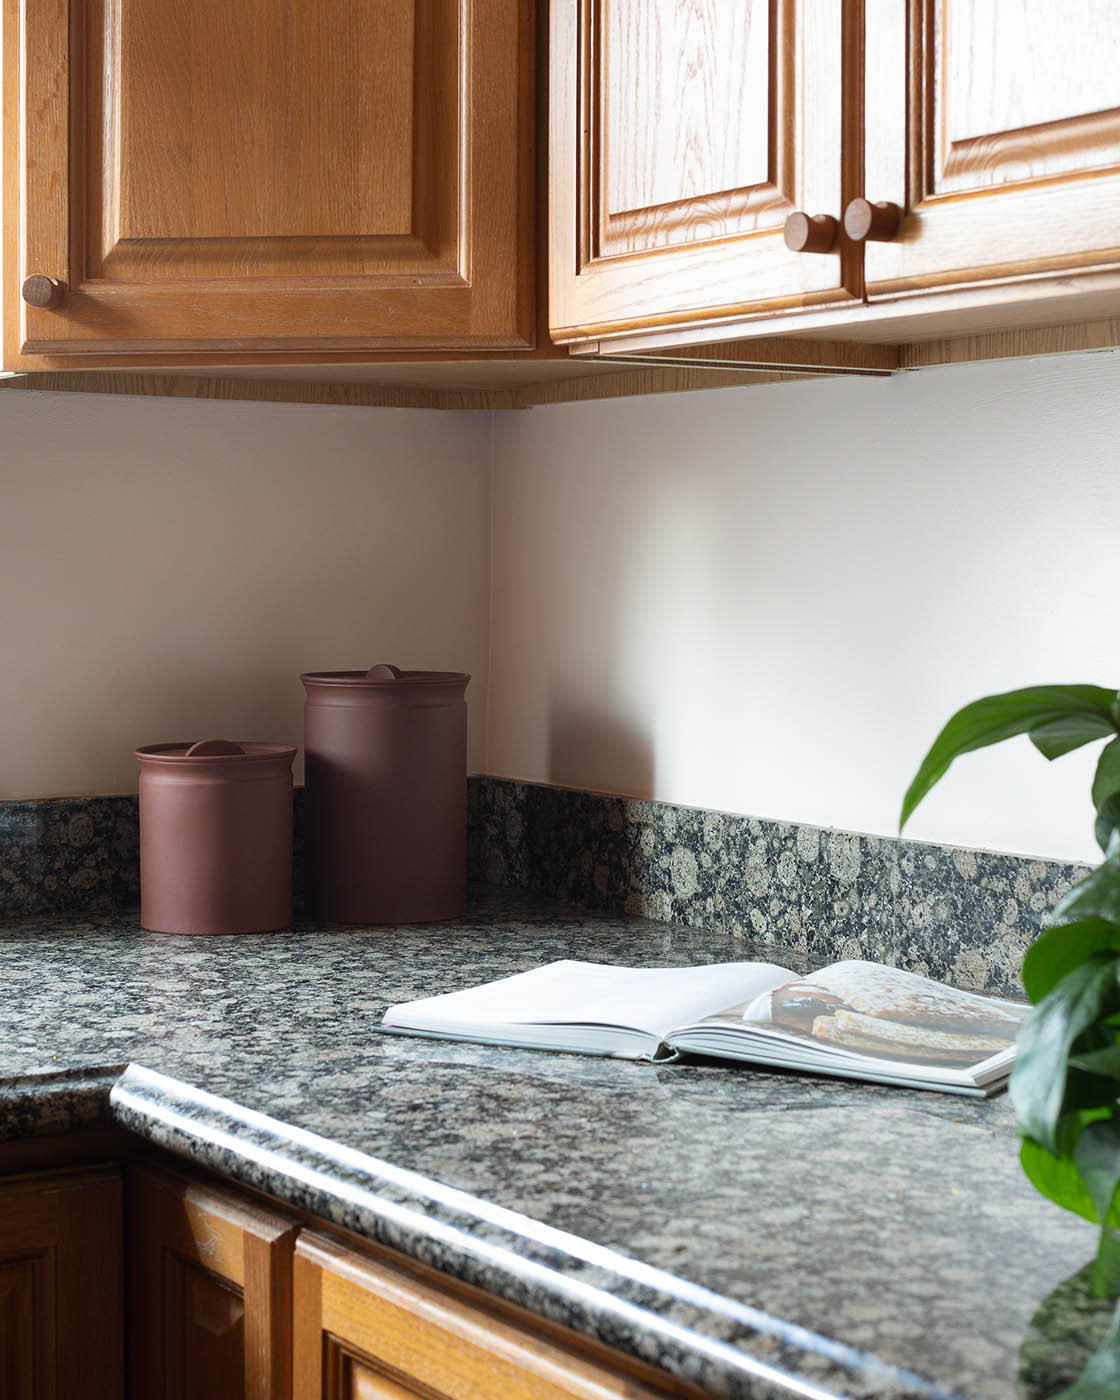 """On choosing pink paint """"I was trying to embrace the warm-toned cabinetry and bring it into 2019 with a monochromatic color scheme, so the pink color Wing It felt natural yet unexpected. Beige or white felt too boring and of a similar decade as its current design and anything more contrasted (green, blue) would've felt too busy."""""""